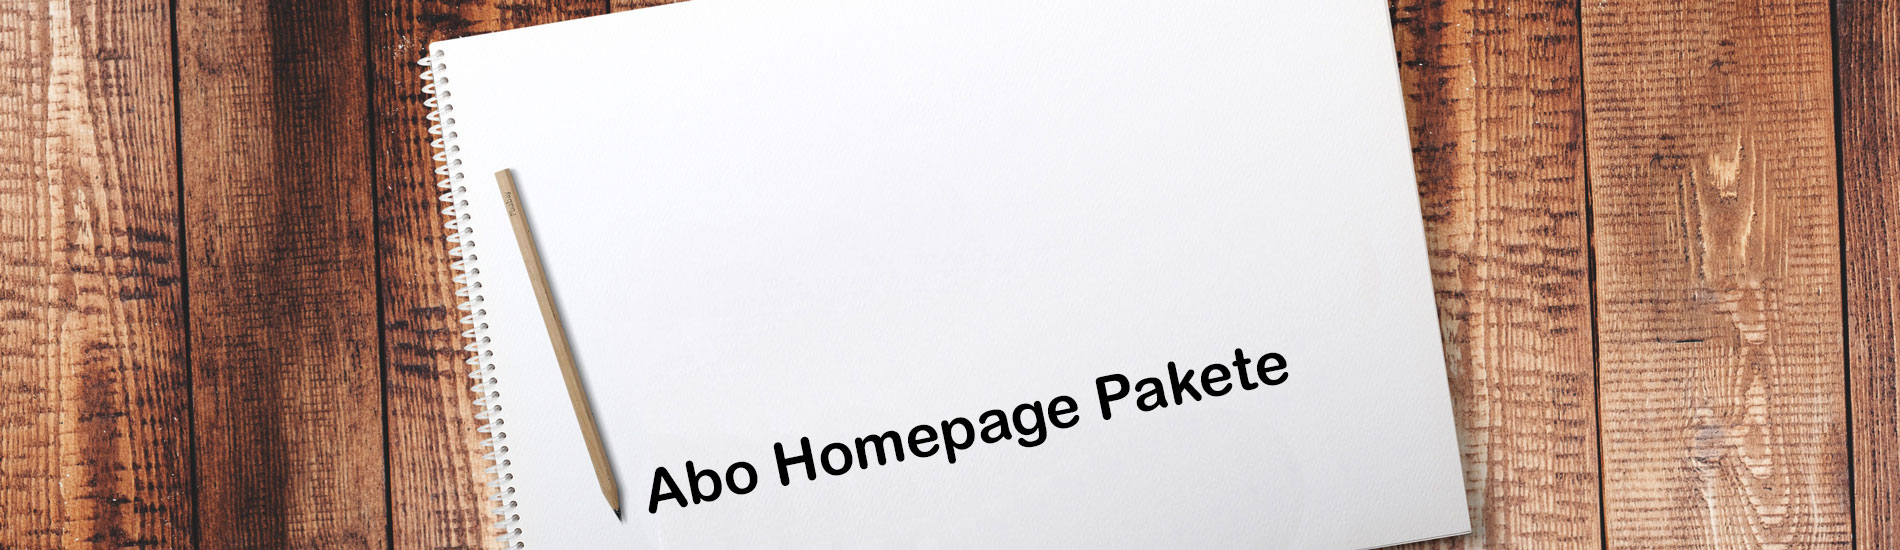 abo-homepage-pakete